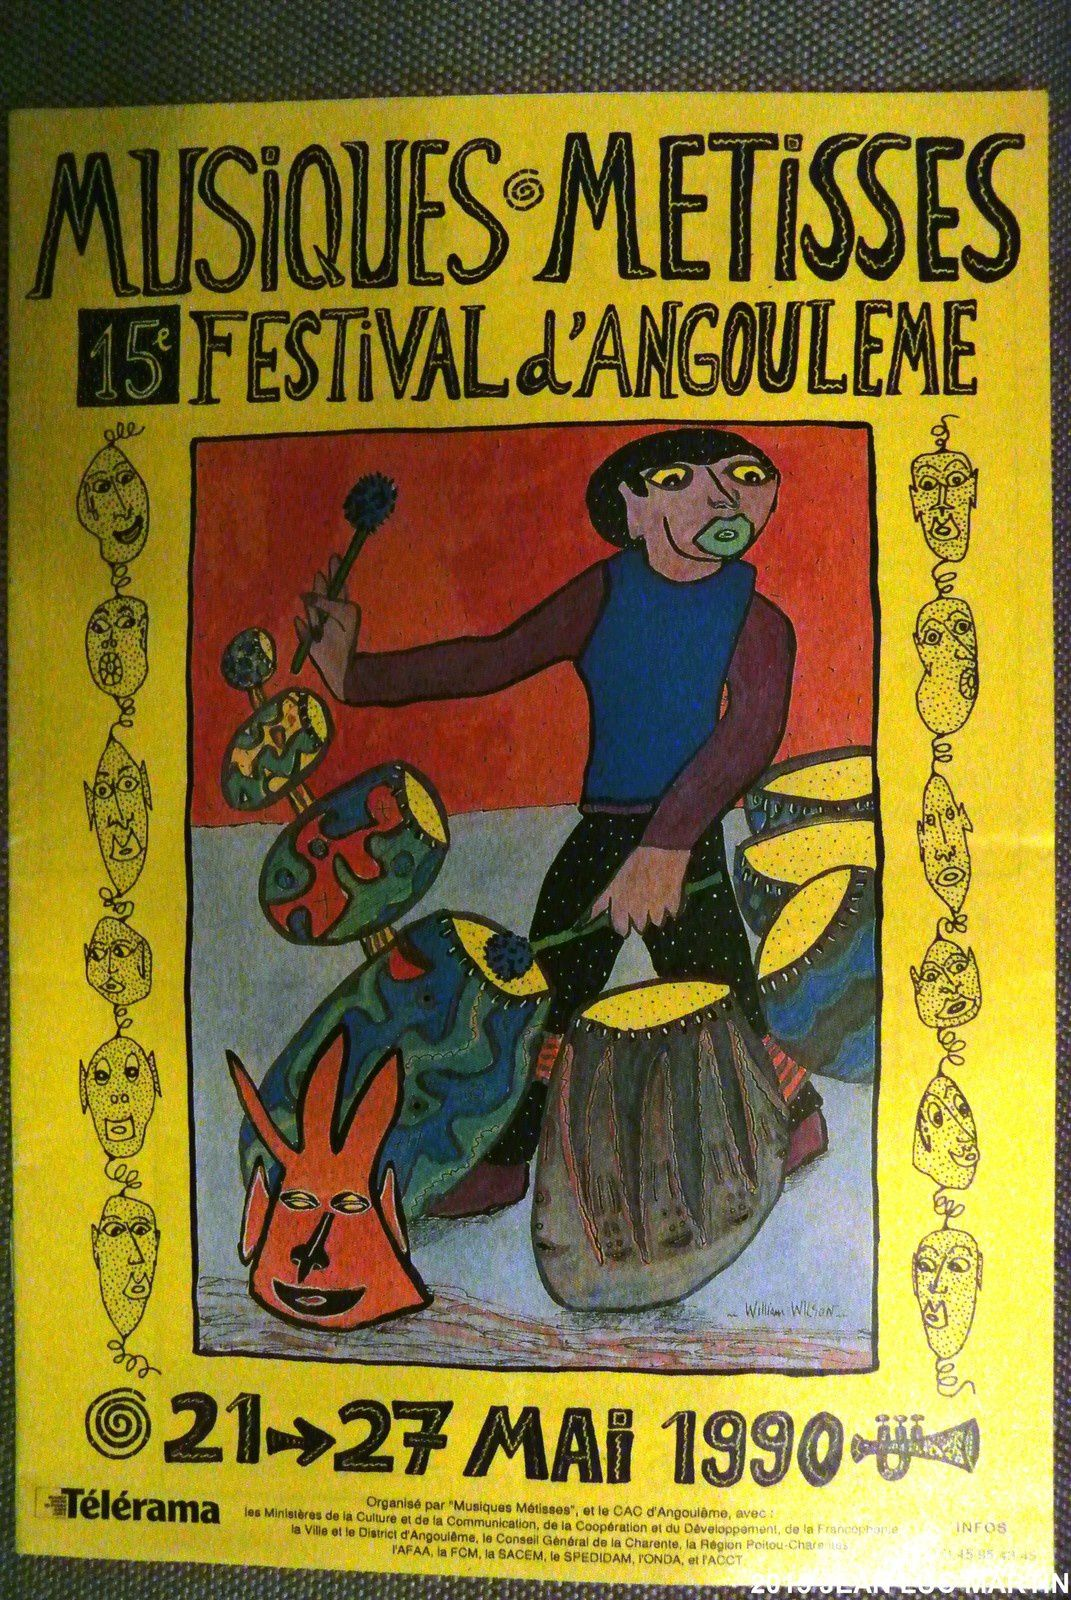 MUSIQUES METISSES ANGOULEME 1990